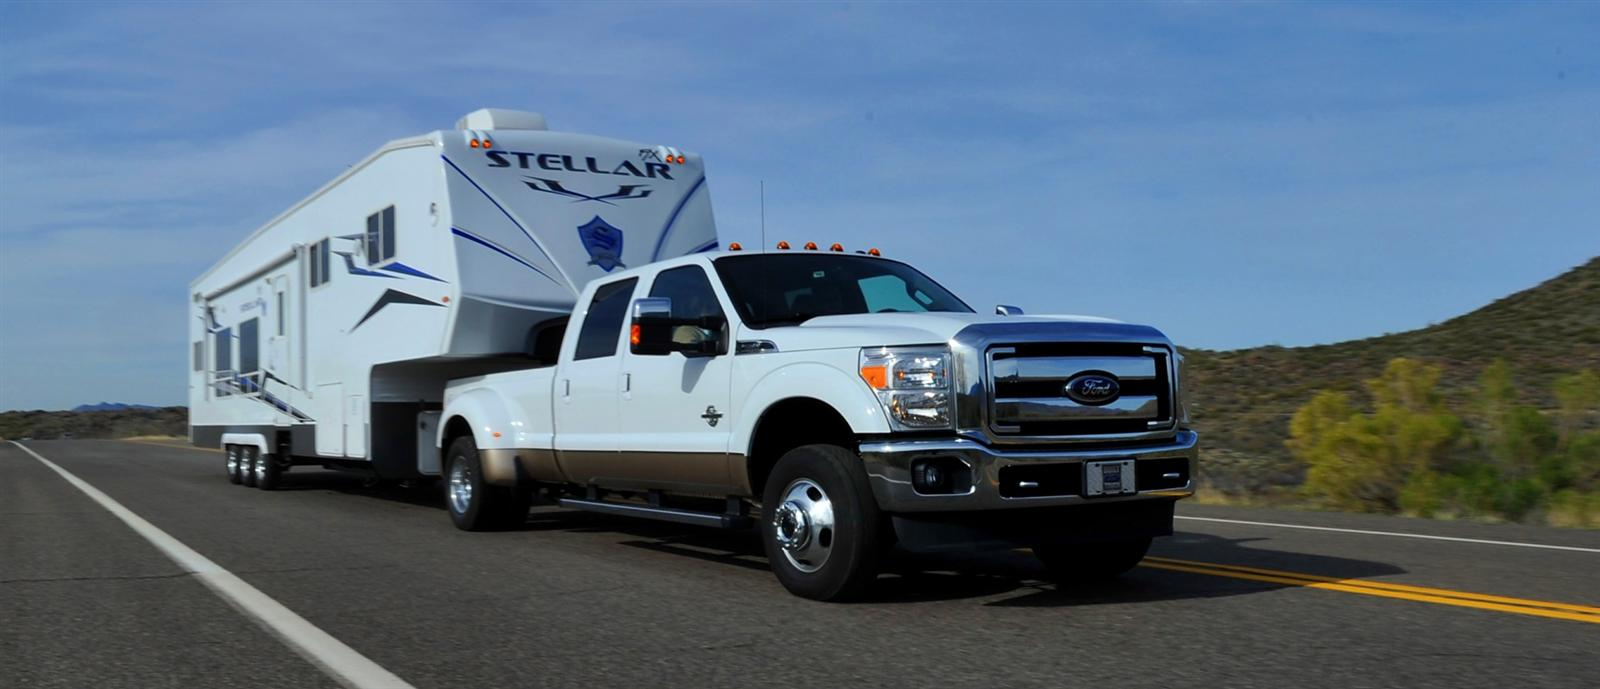 2011 ford f series super duty images photo ford f series. Black Bedroom Furniture Sets. Home Design Ideas